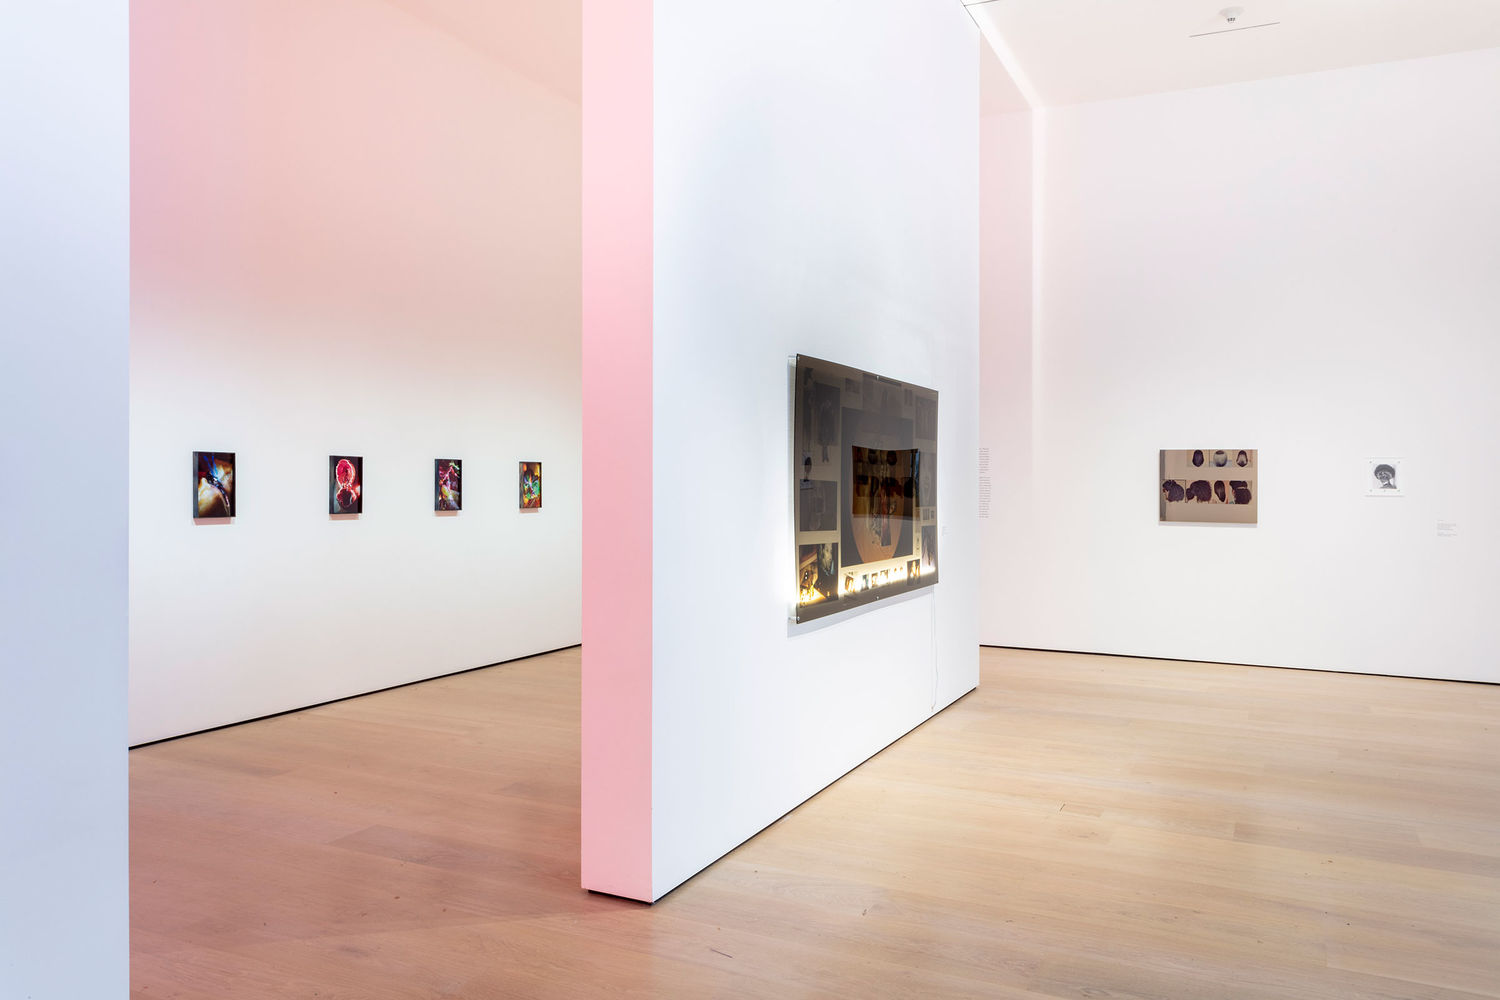 A view of a gallery with a floating wall in the middle, where a lightbox collage hangs